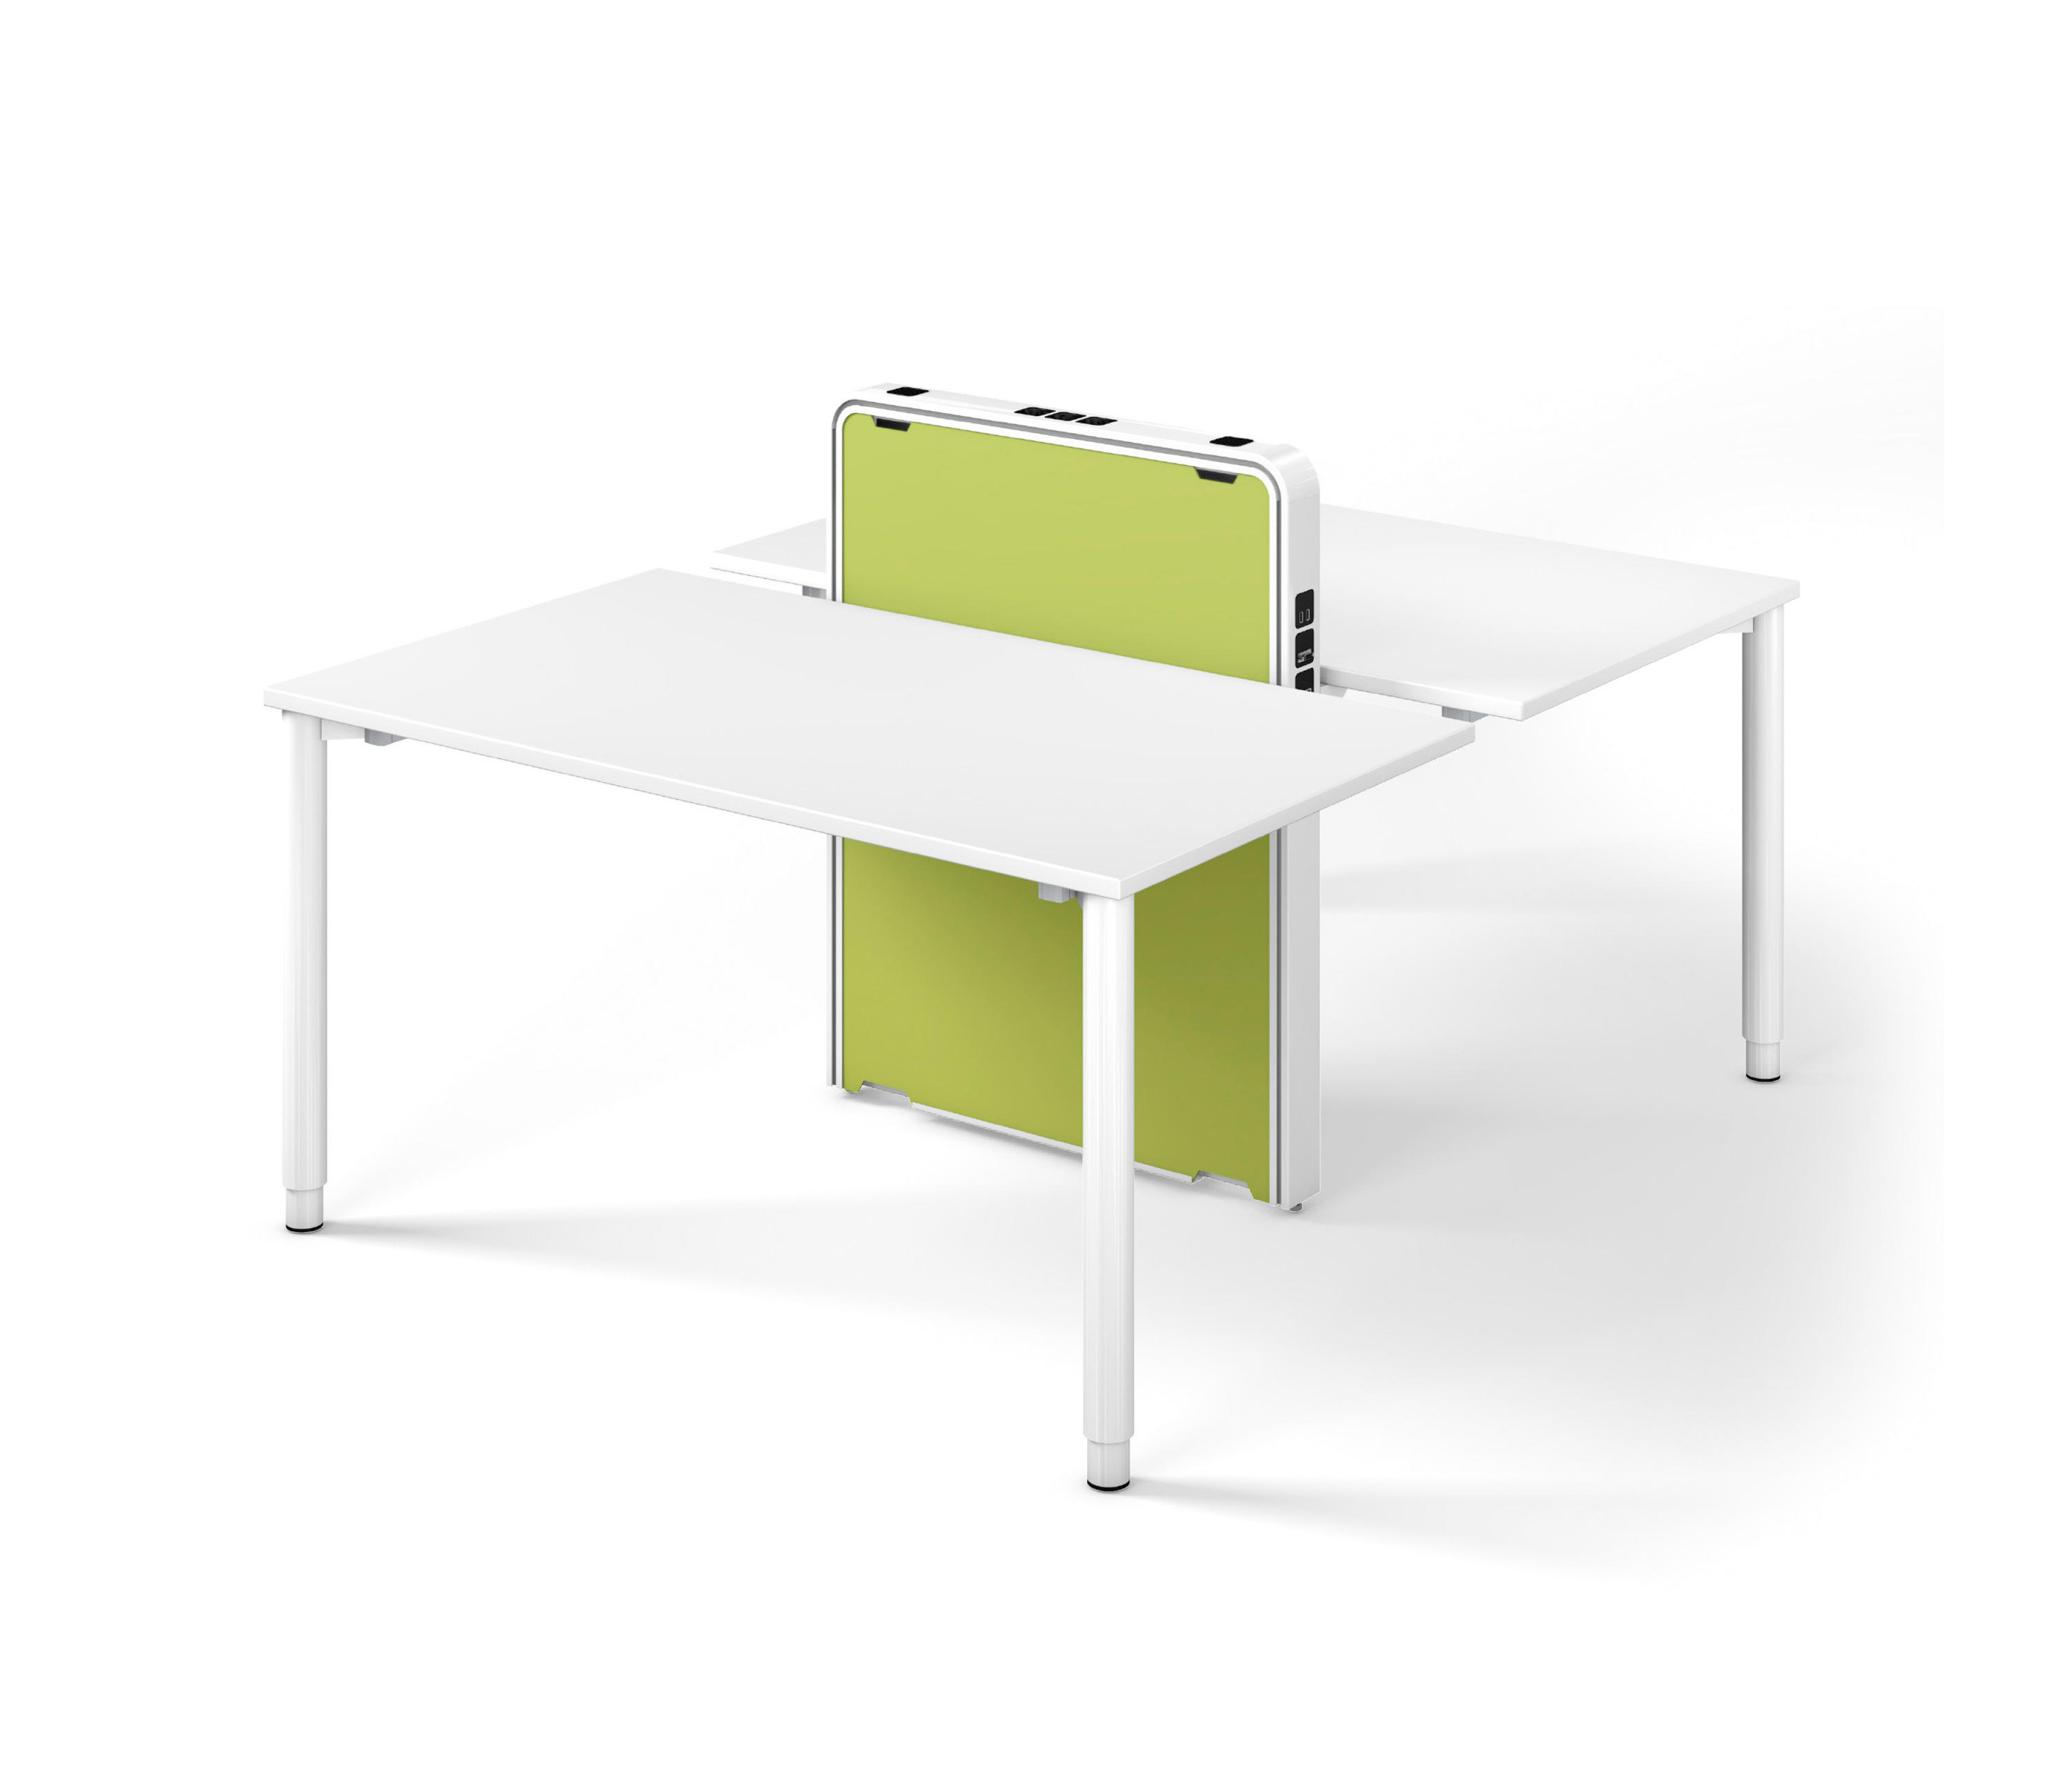 applica workstation modules desking systems from assmann. Black Bedroom Furniture Sets. Home Design Ideas